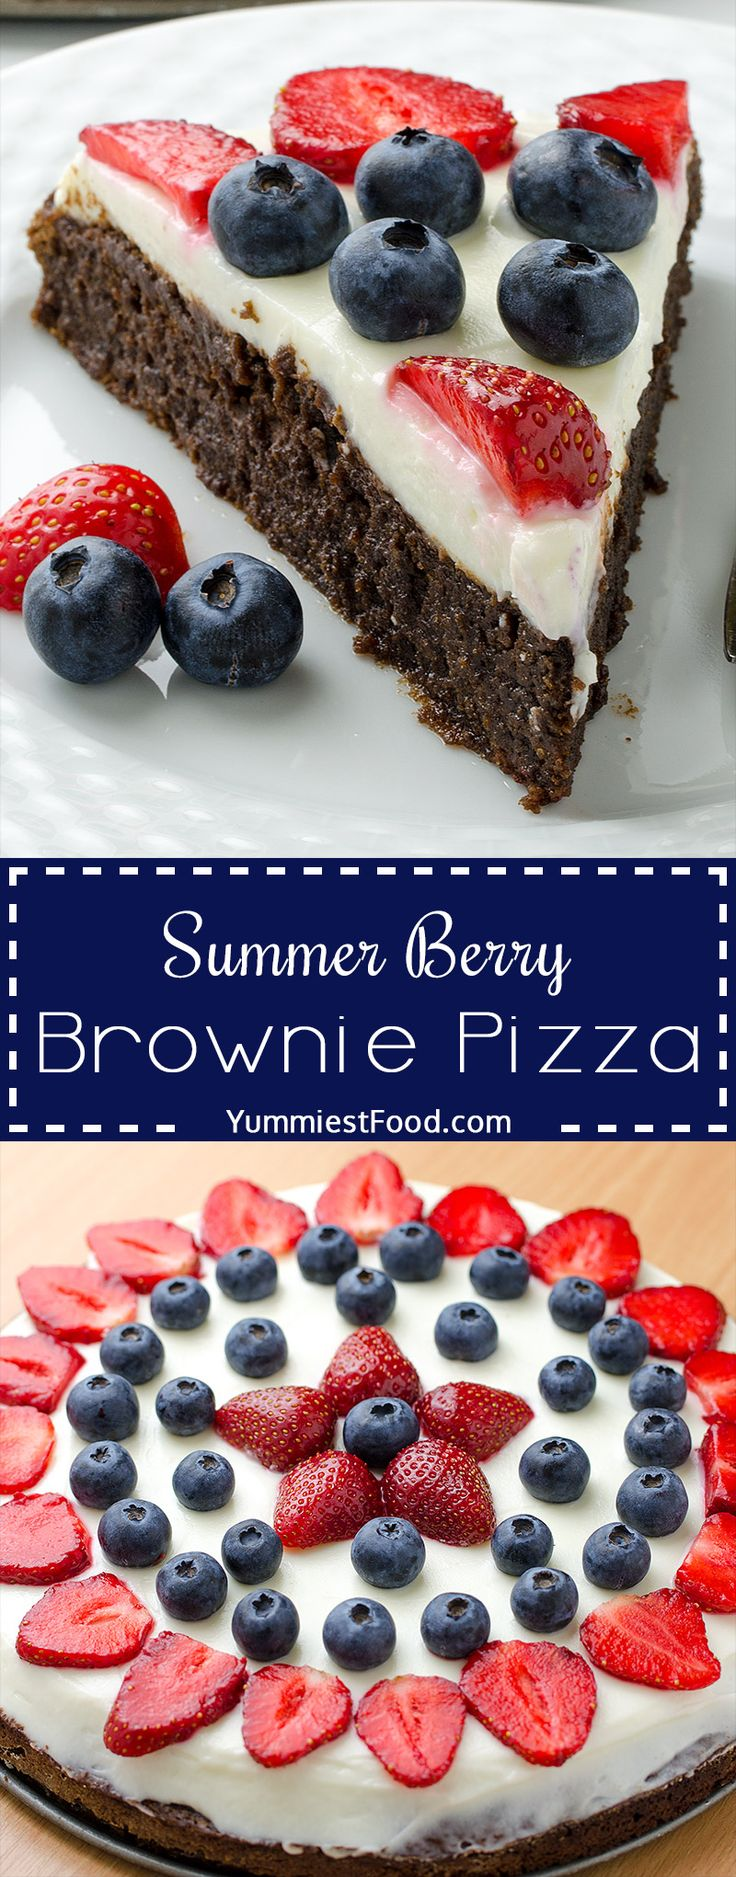 Summer Berry Brownie Pizza - make a sweet dessert pizza with delicious brownie crust topped with cream cheese frosting and loaded with lots of berries! Great recipe for the Great Memorial Day or 4th of July!